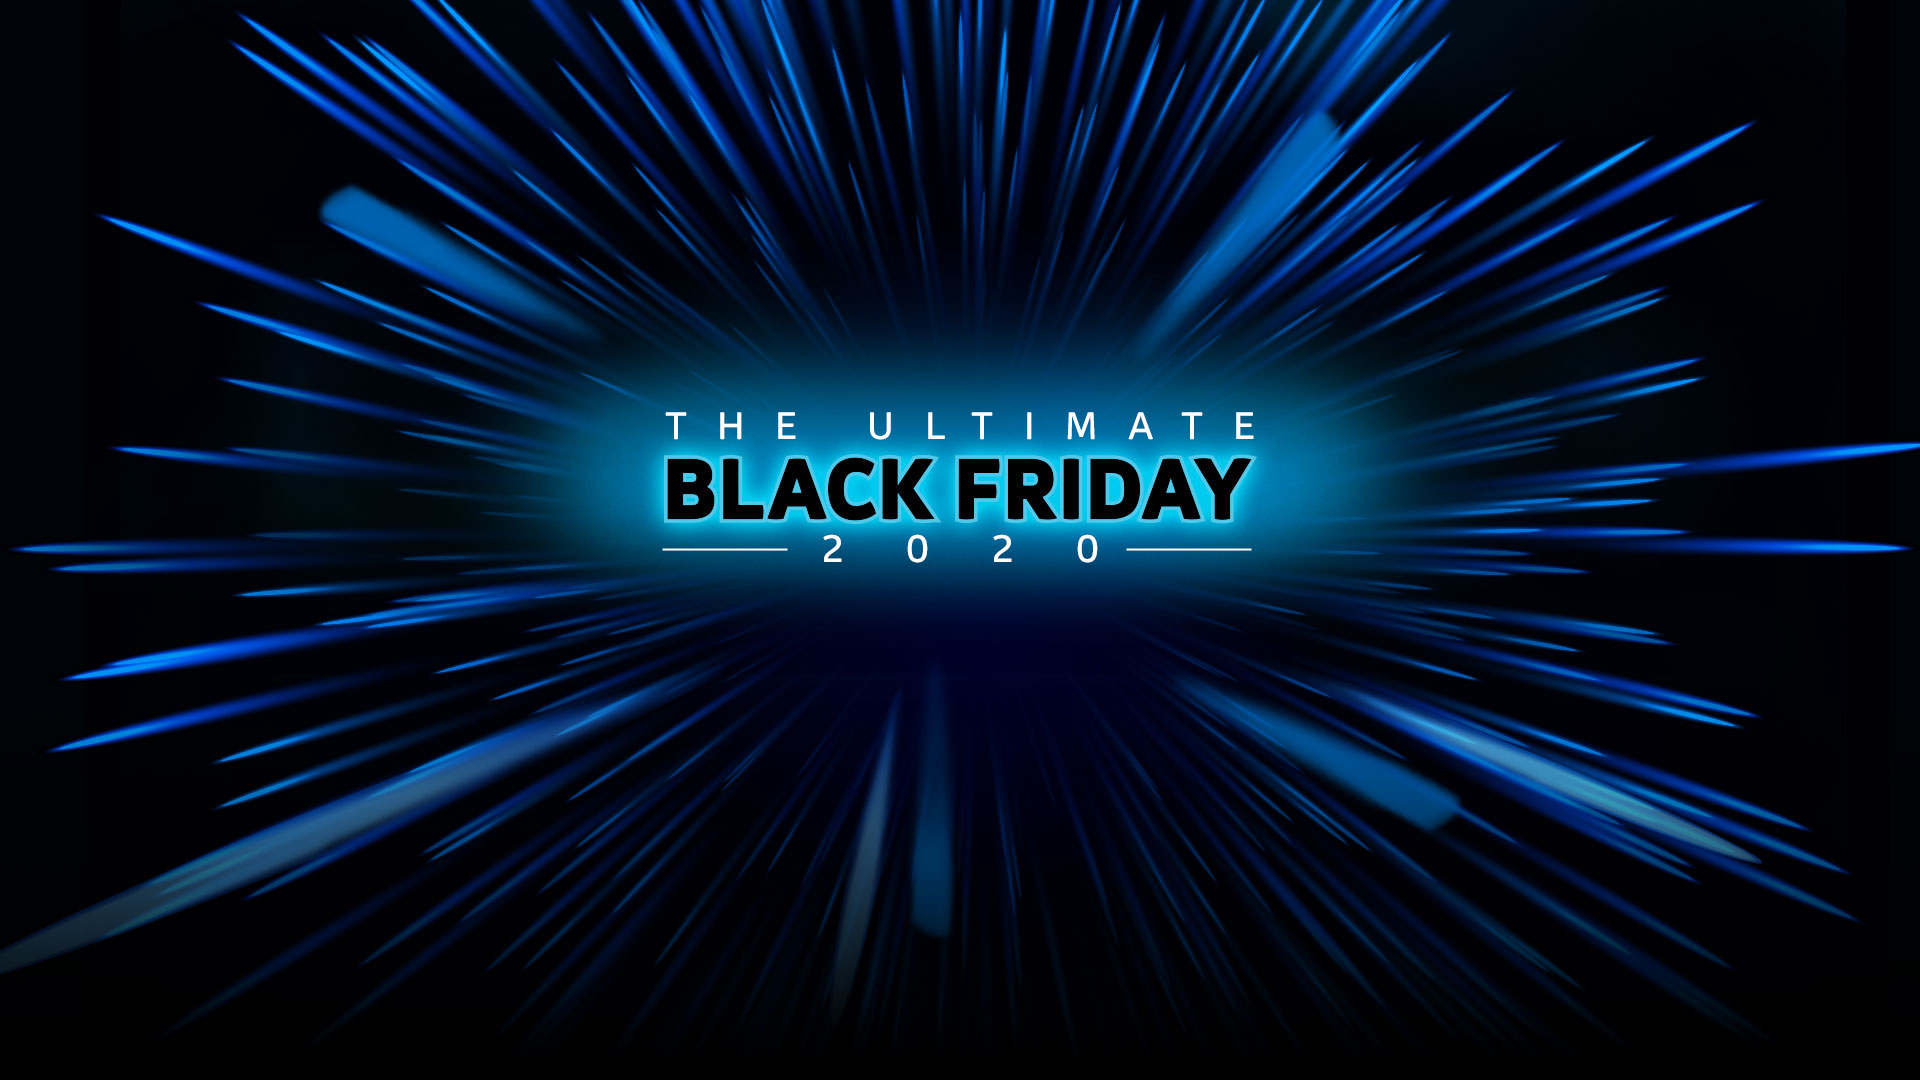 "<div style=""display: none;"">The Ultimate Black Friday 2020 - Campaign</div>"